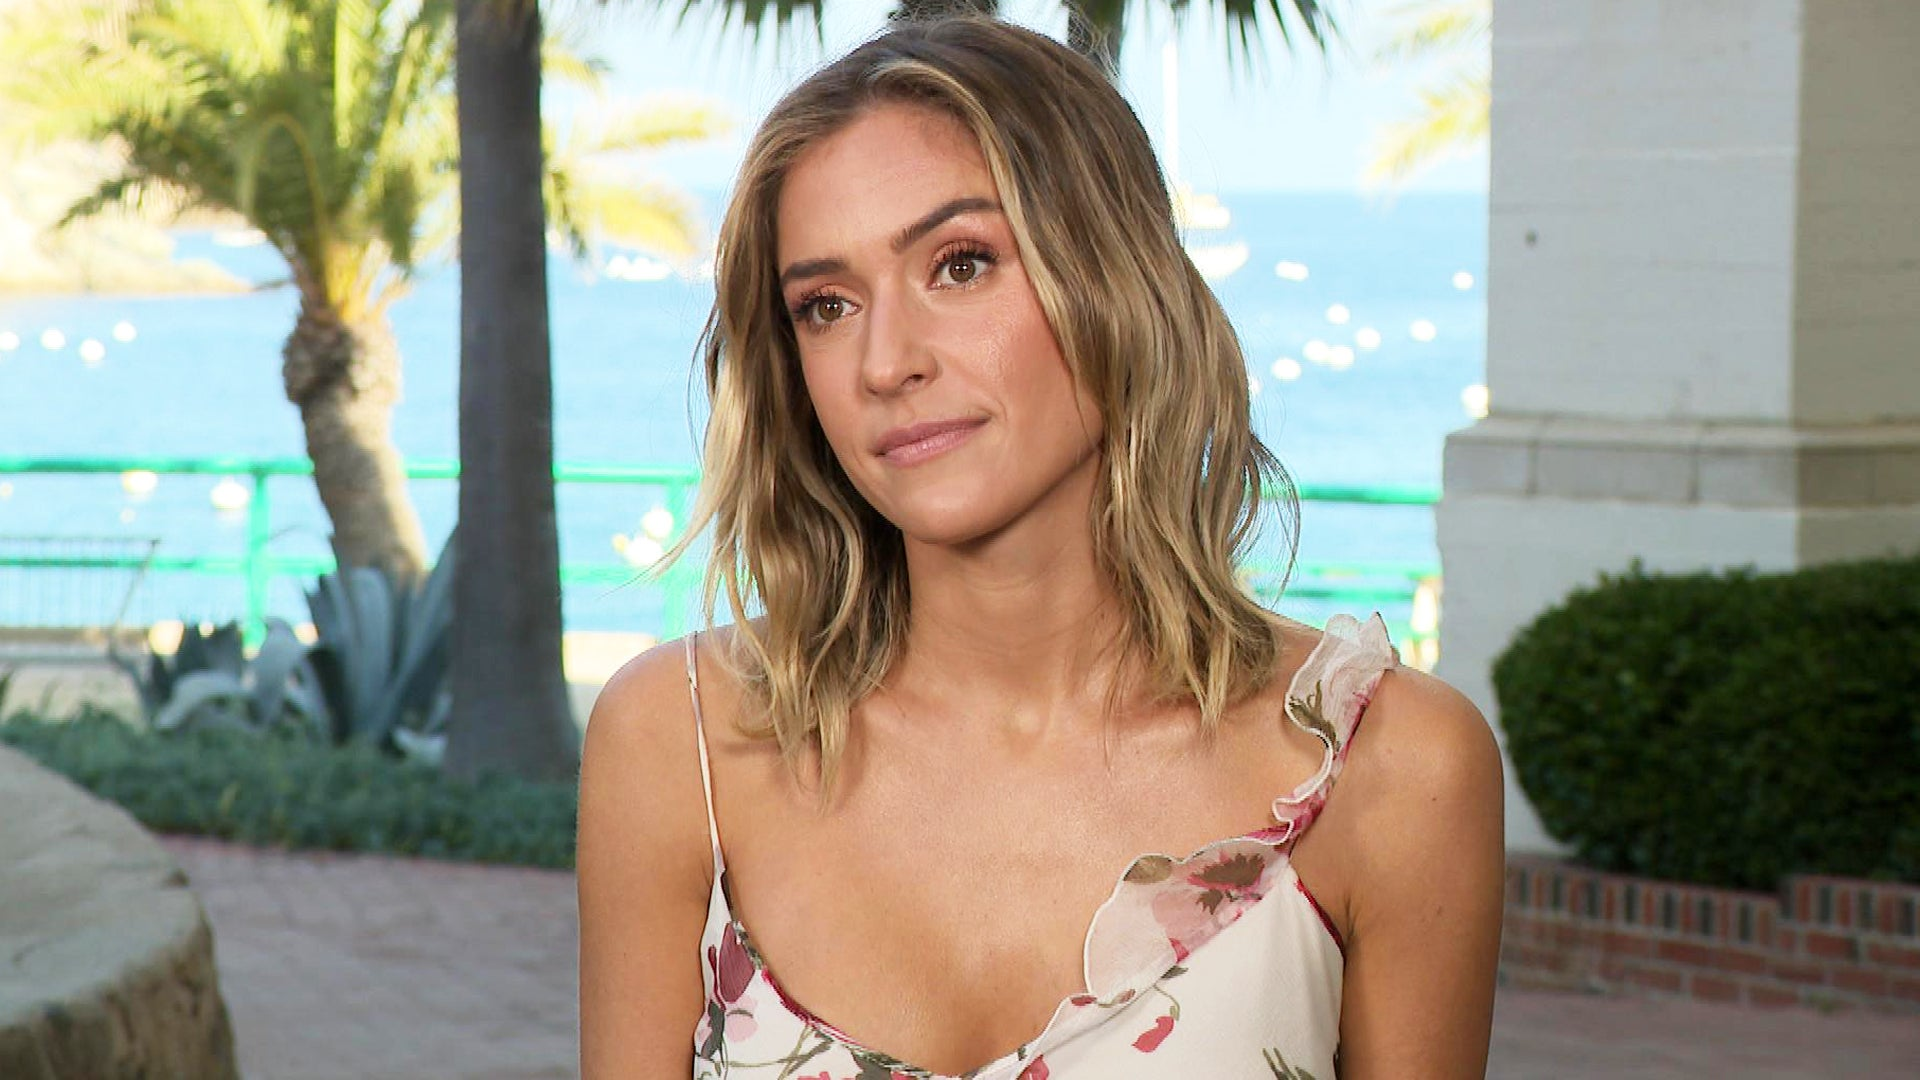 Kristin Cavallari Opens Up About Why Her Marriage to Jay Cutler 'Just Didn't Work' (Exclusive)